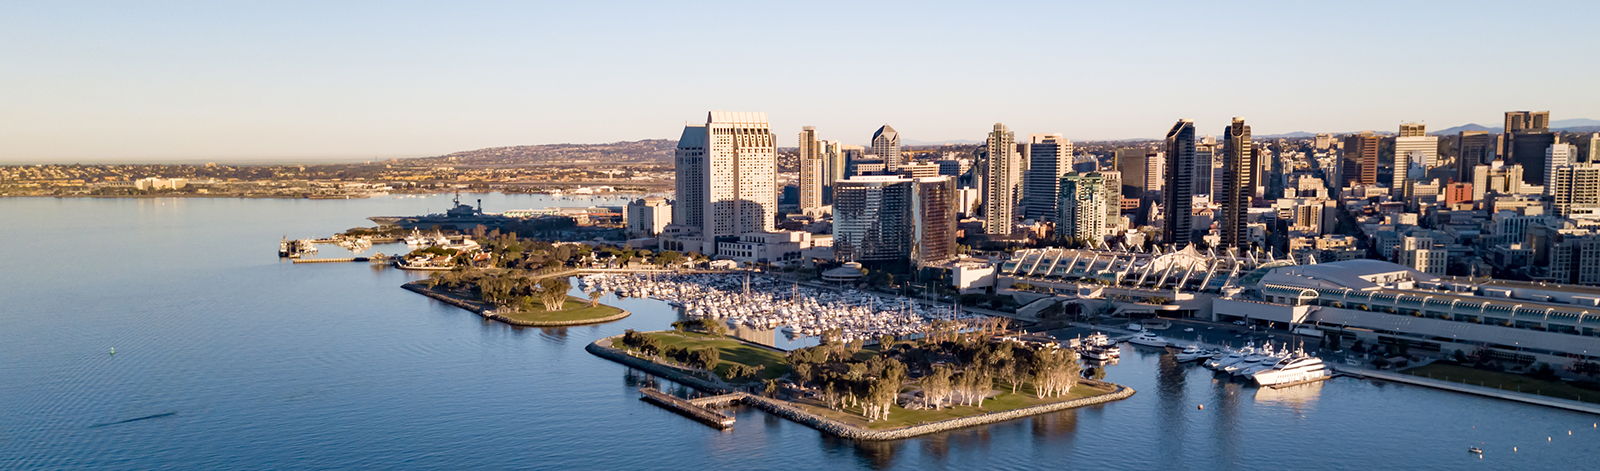 Drone view of San Diego from the bay